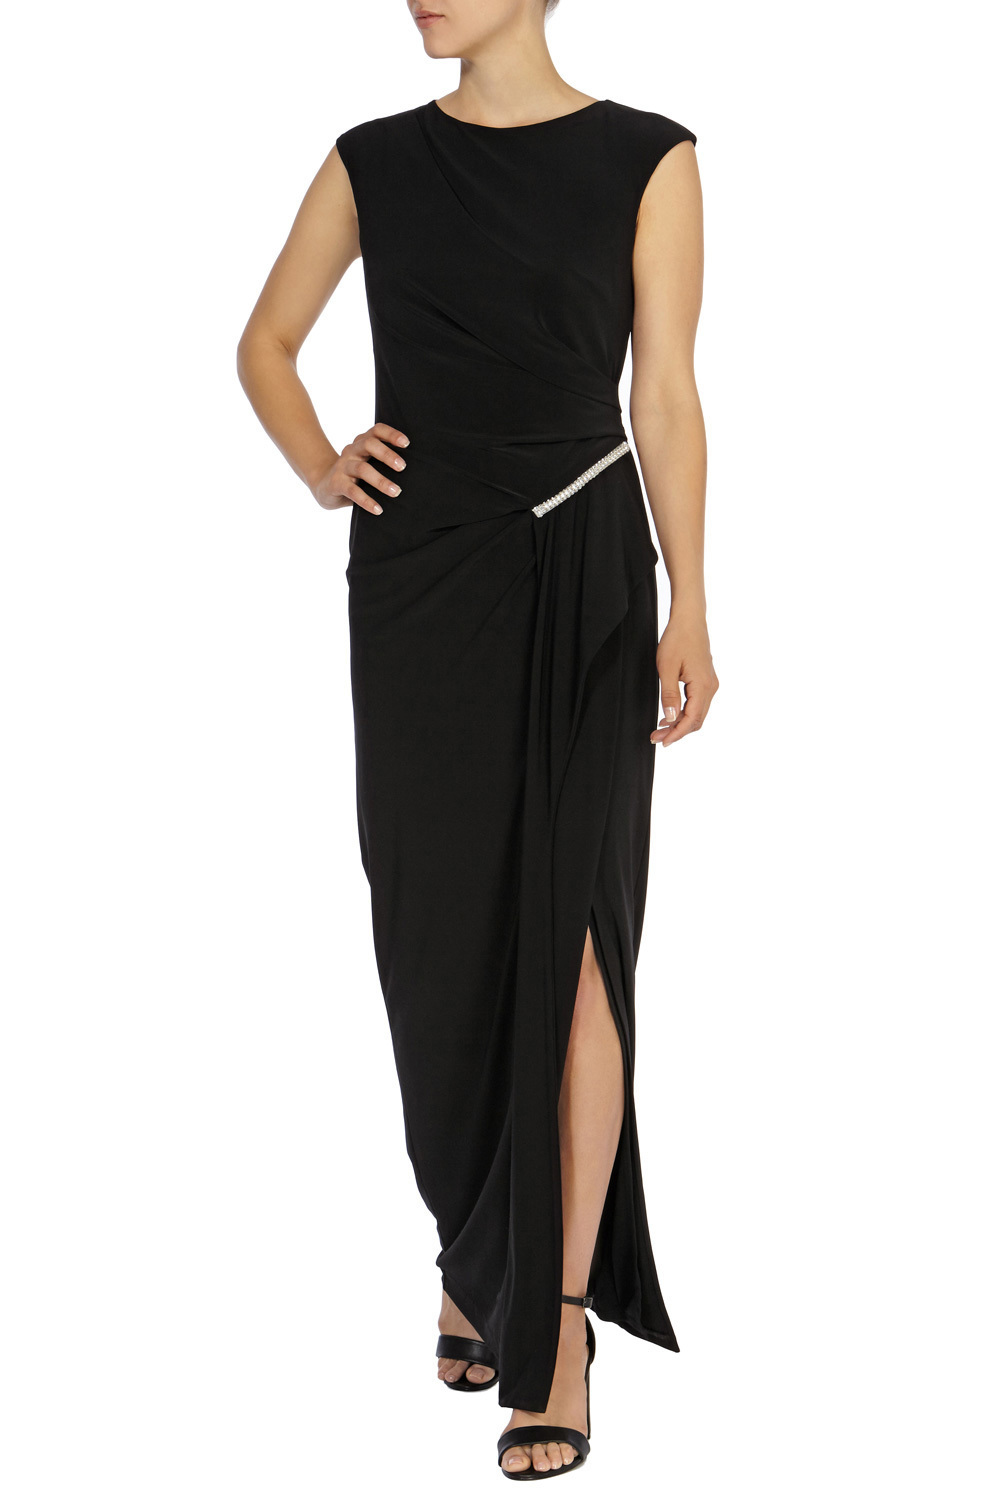 Graciella Jersey Maxi Dress - pattern: plain; sleeve style: sleeveless; style: maxi dress; length: ankle length; waist detail: flattering waist detail; predominant colour: black; fit: body skimming; fibres: polyester/polyamide - stretch; occasions: occasion; neckline: crew; sleeve length: sleeveless; pattern type: fabric; texture group: jersey - stretchy/drapey; embellishment: crystals/glass; season: a/w 2015; wardrobe: event